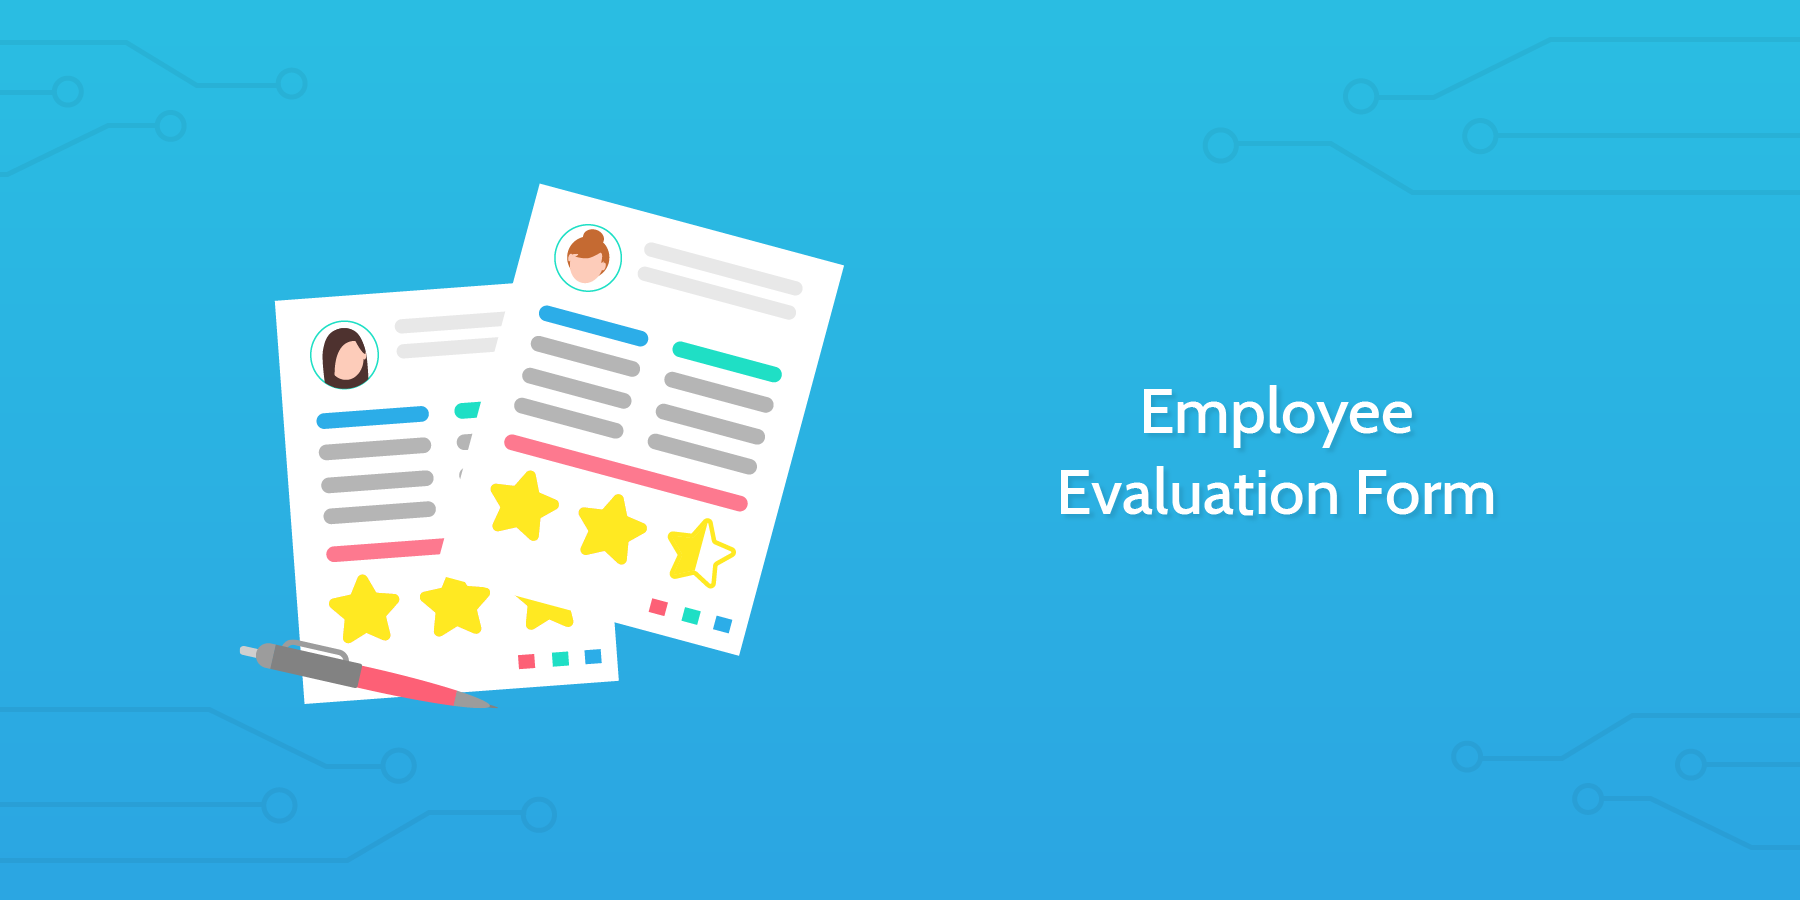 Introduction to the Employee Evaluation Form: